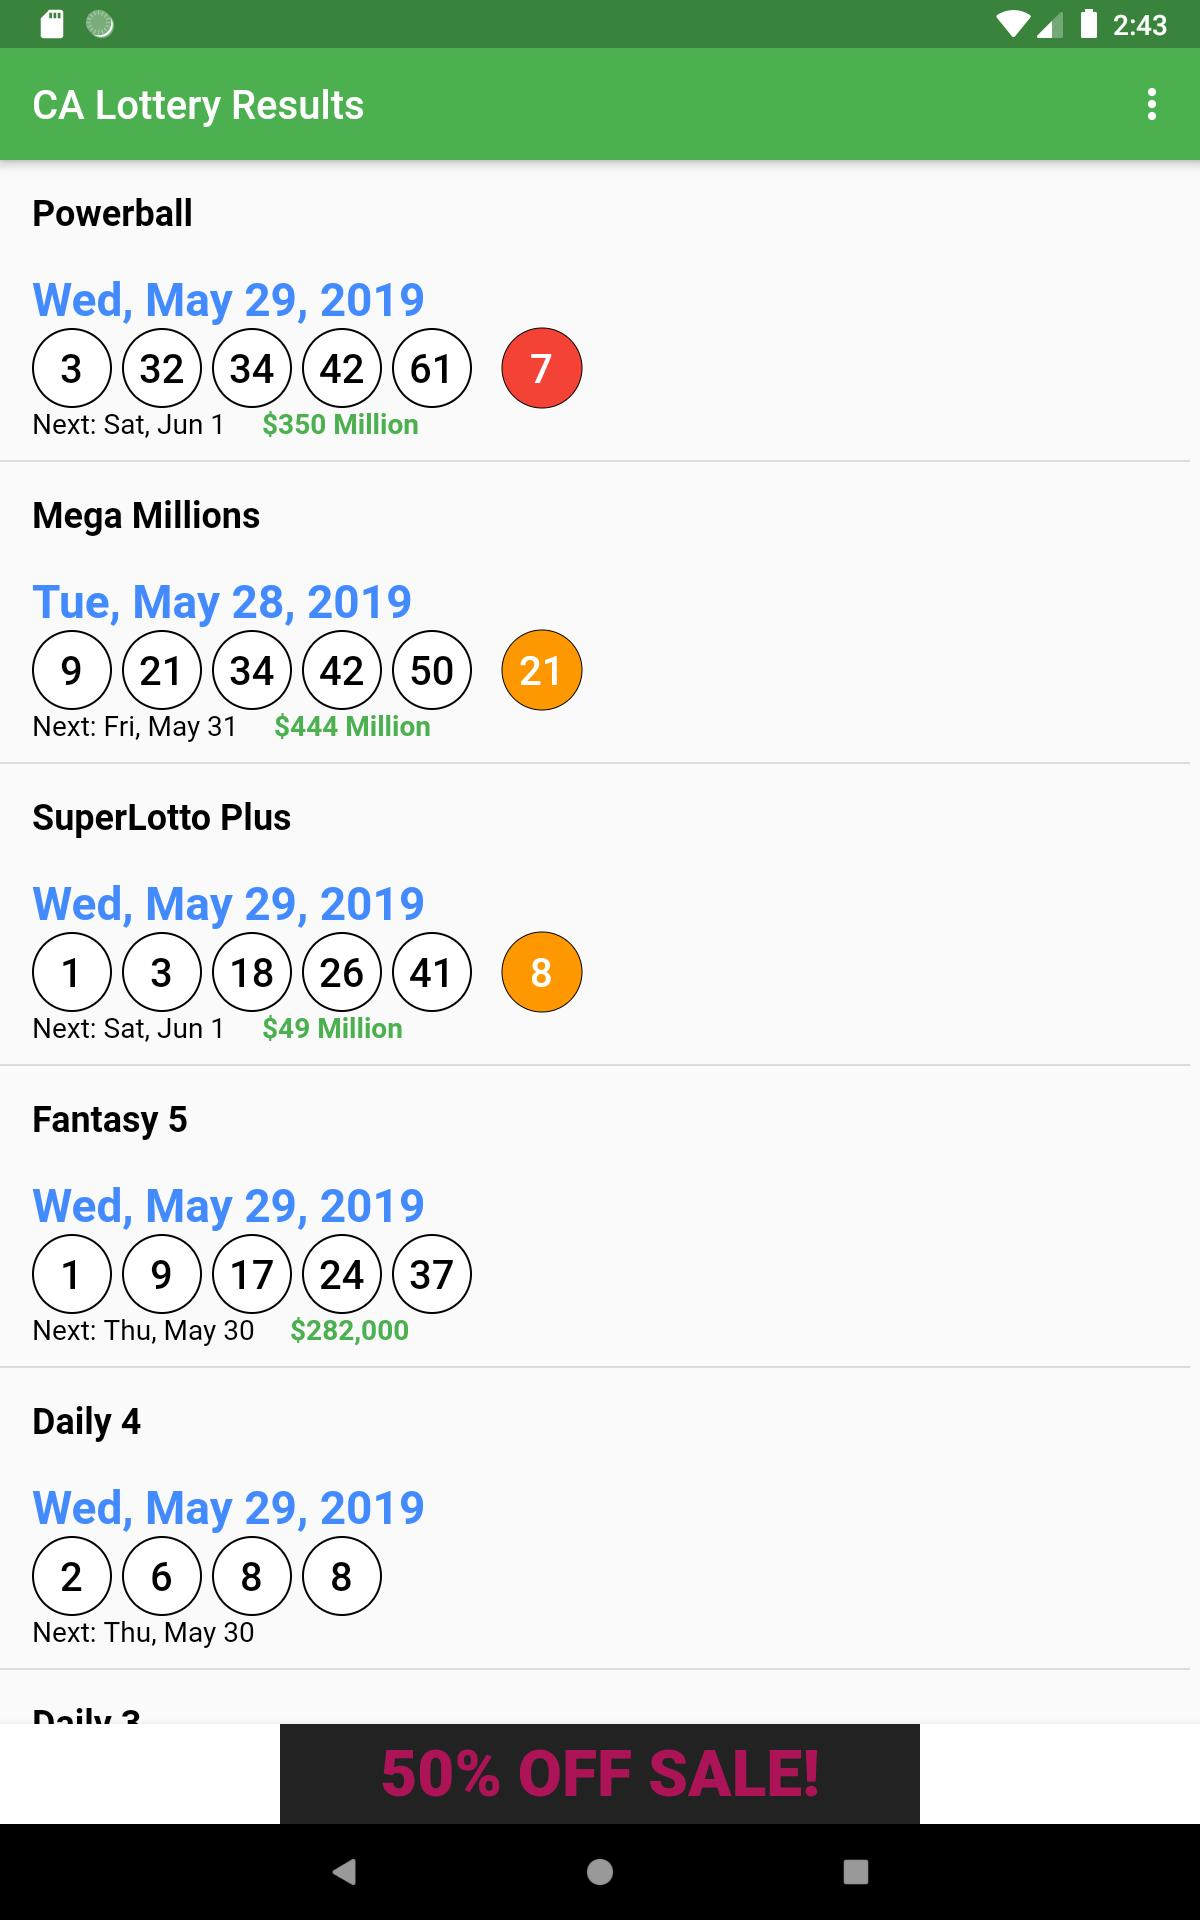 CA Lottery Results for Android - APK Download